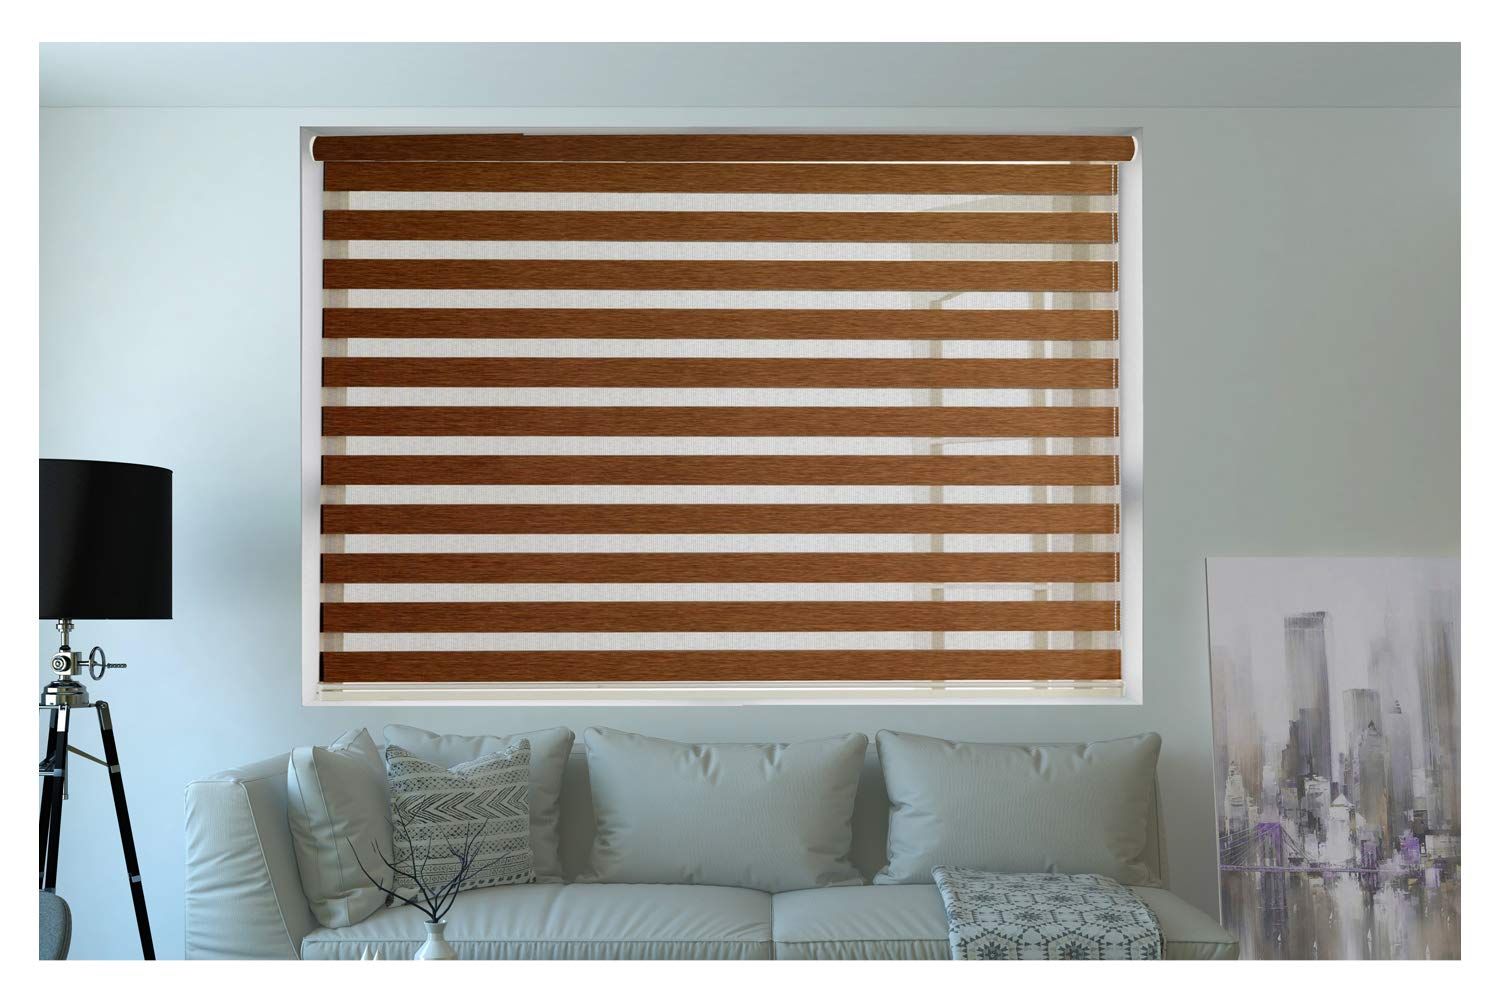 Buy ZEBRA BLINDS Wooden Blinds for Windows or Outdoor Decor of The Home  (Brown) Online at Low Prices in India - Amazon.in